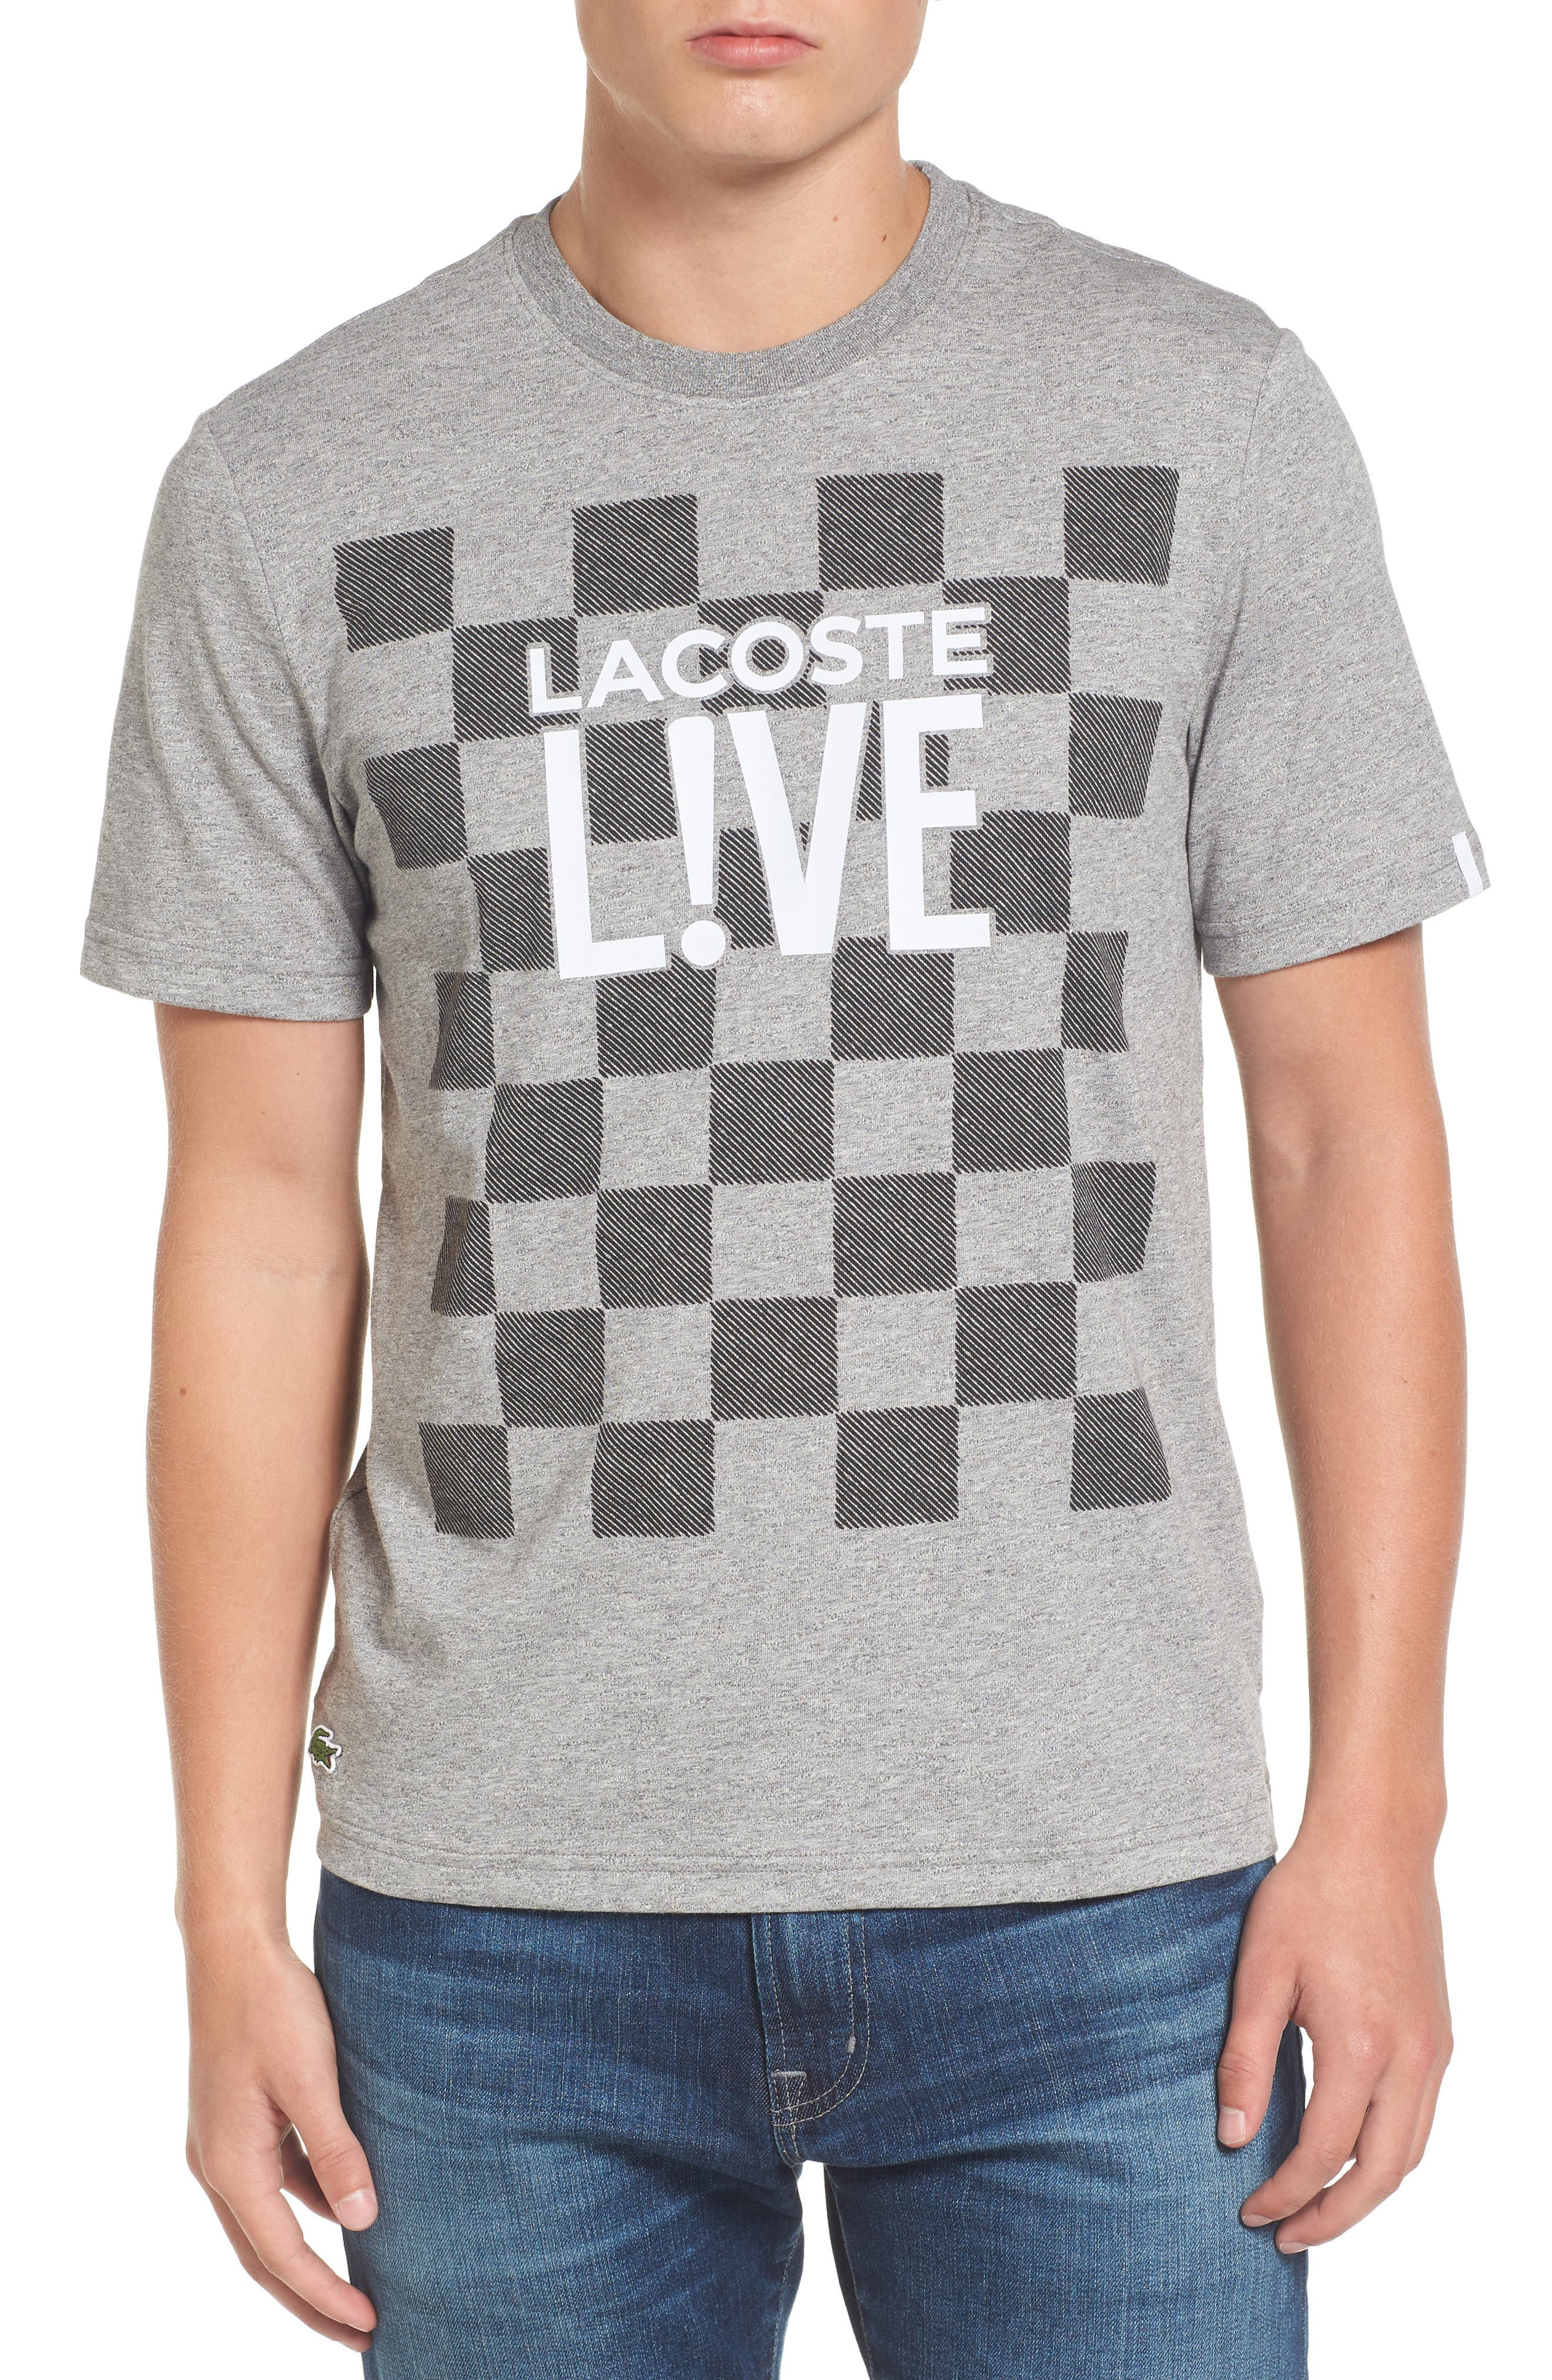 Lacoste Check Graphic T-Shirt